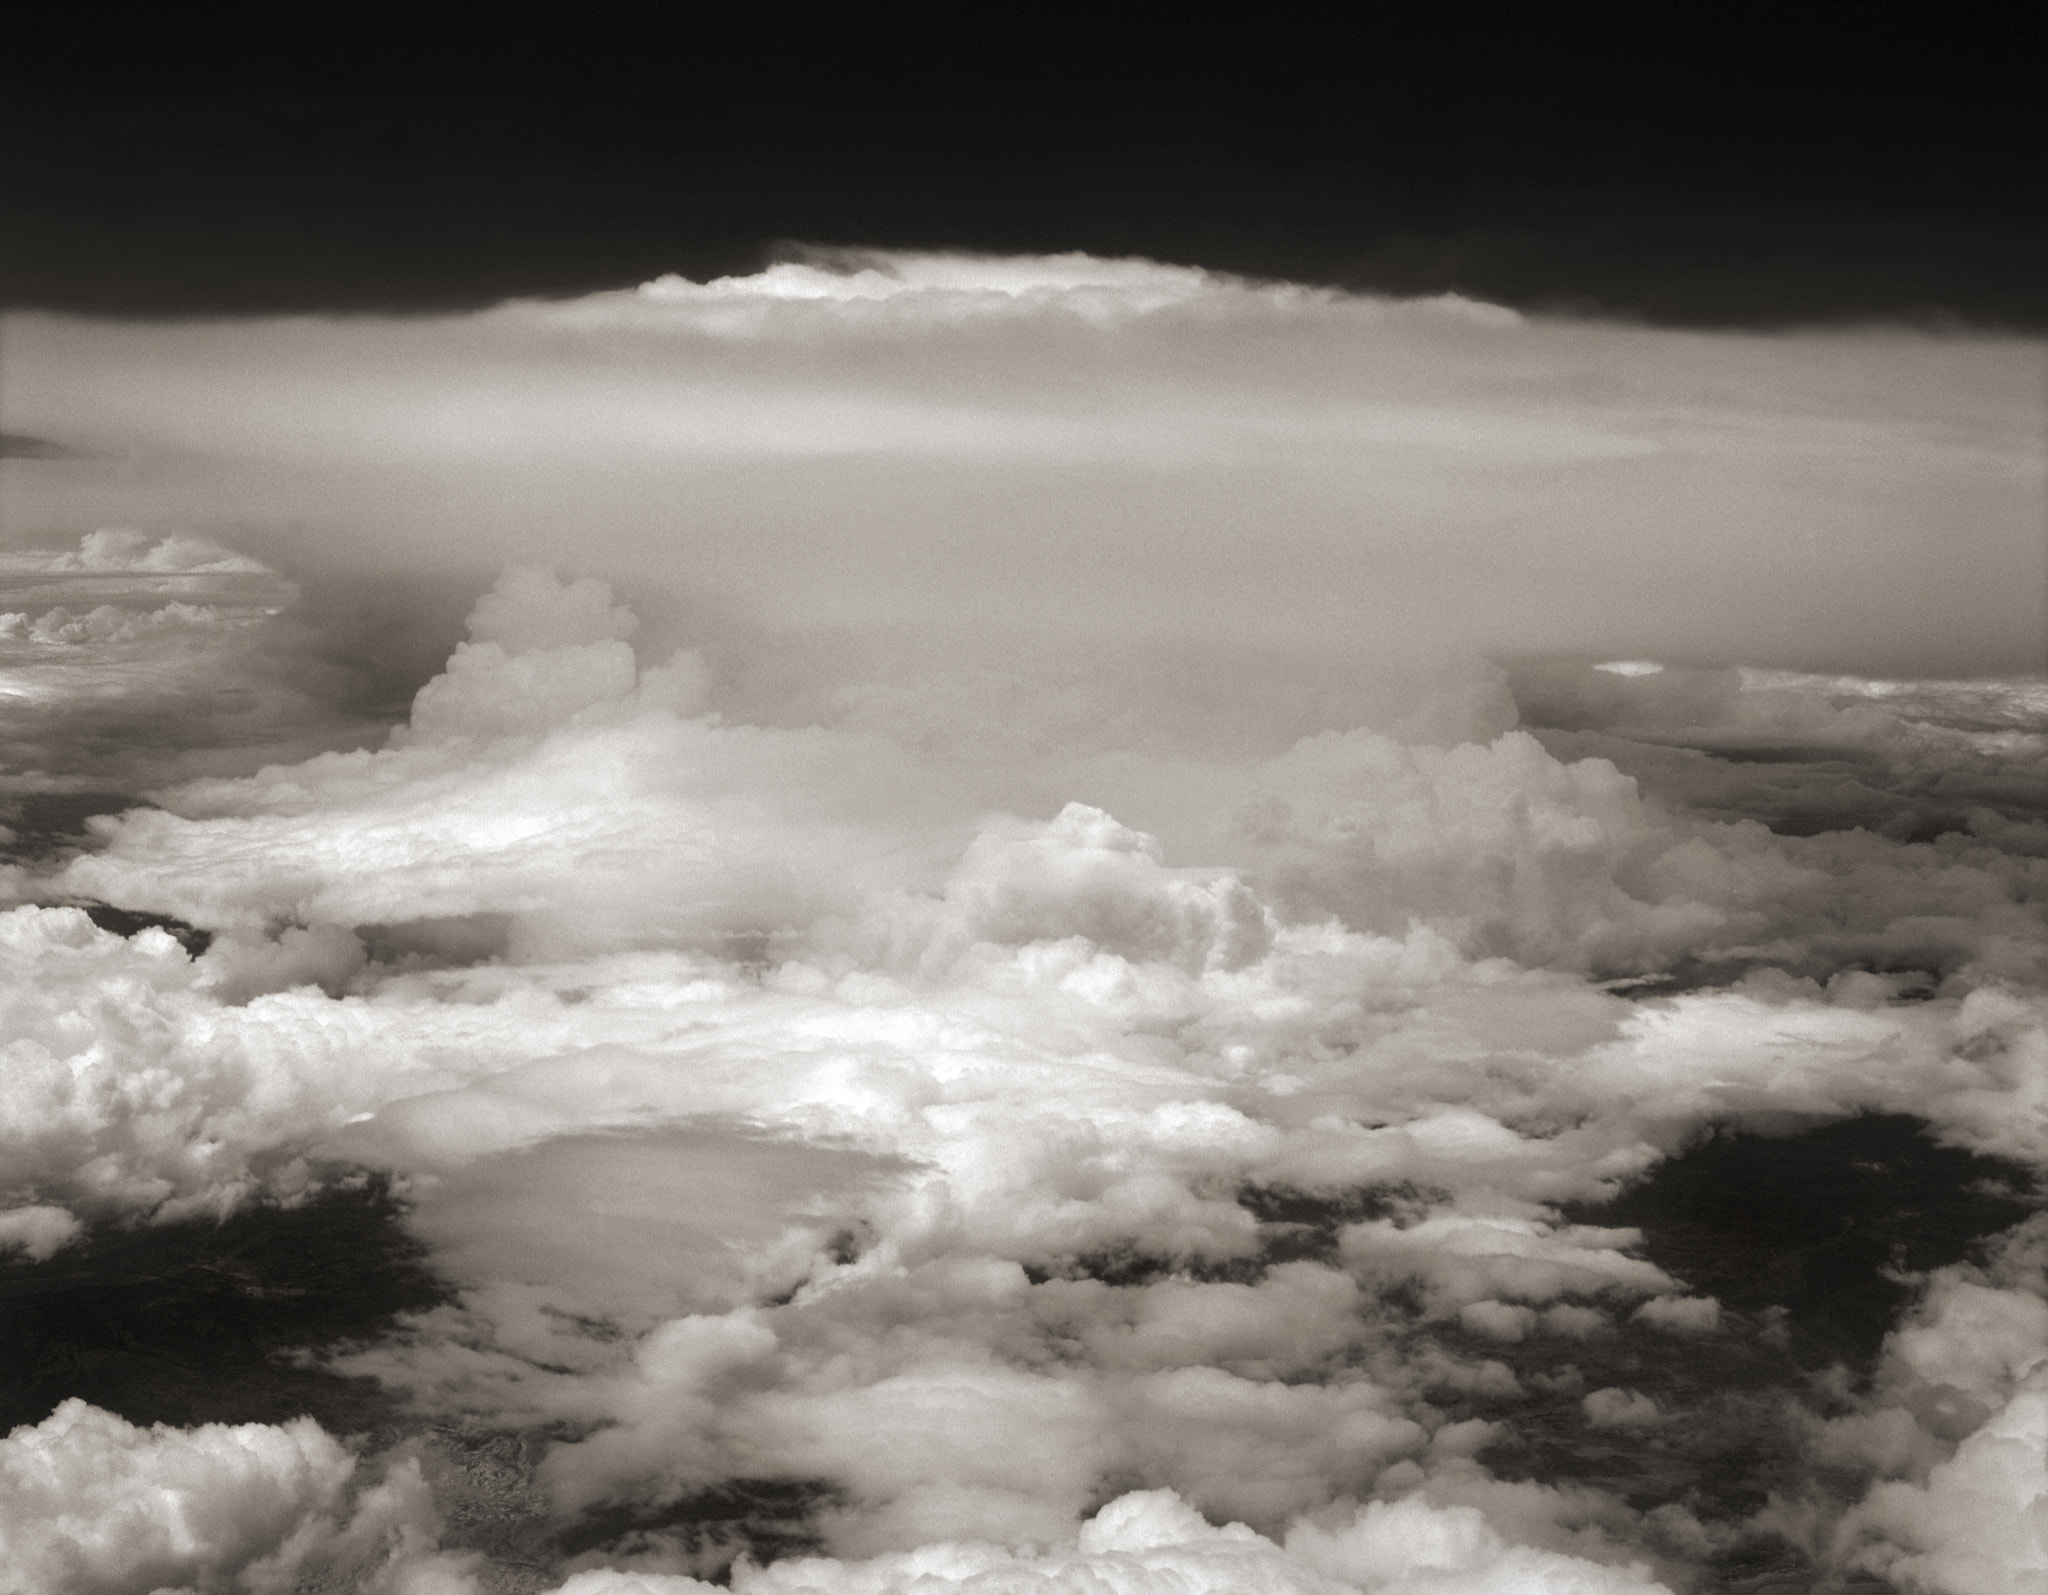 Photograph Thunderhead, from Seat 12J, Over Midwestern United States by Austin Granger on 500px